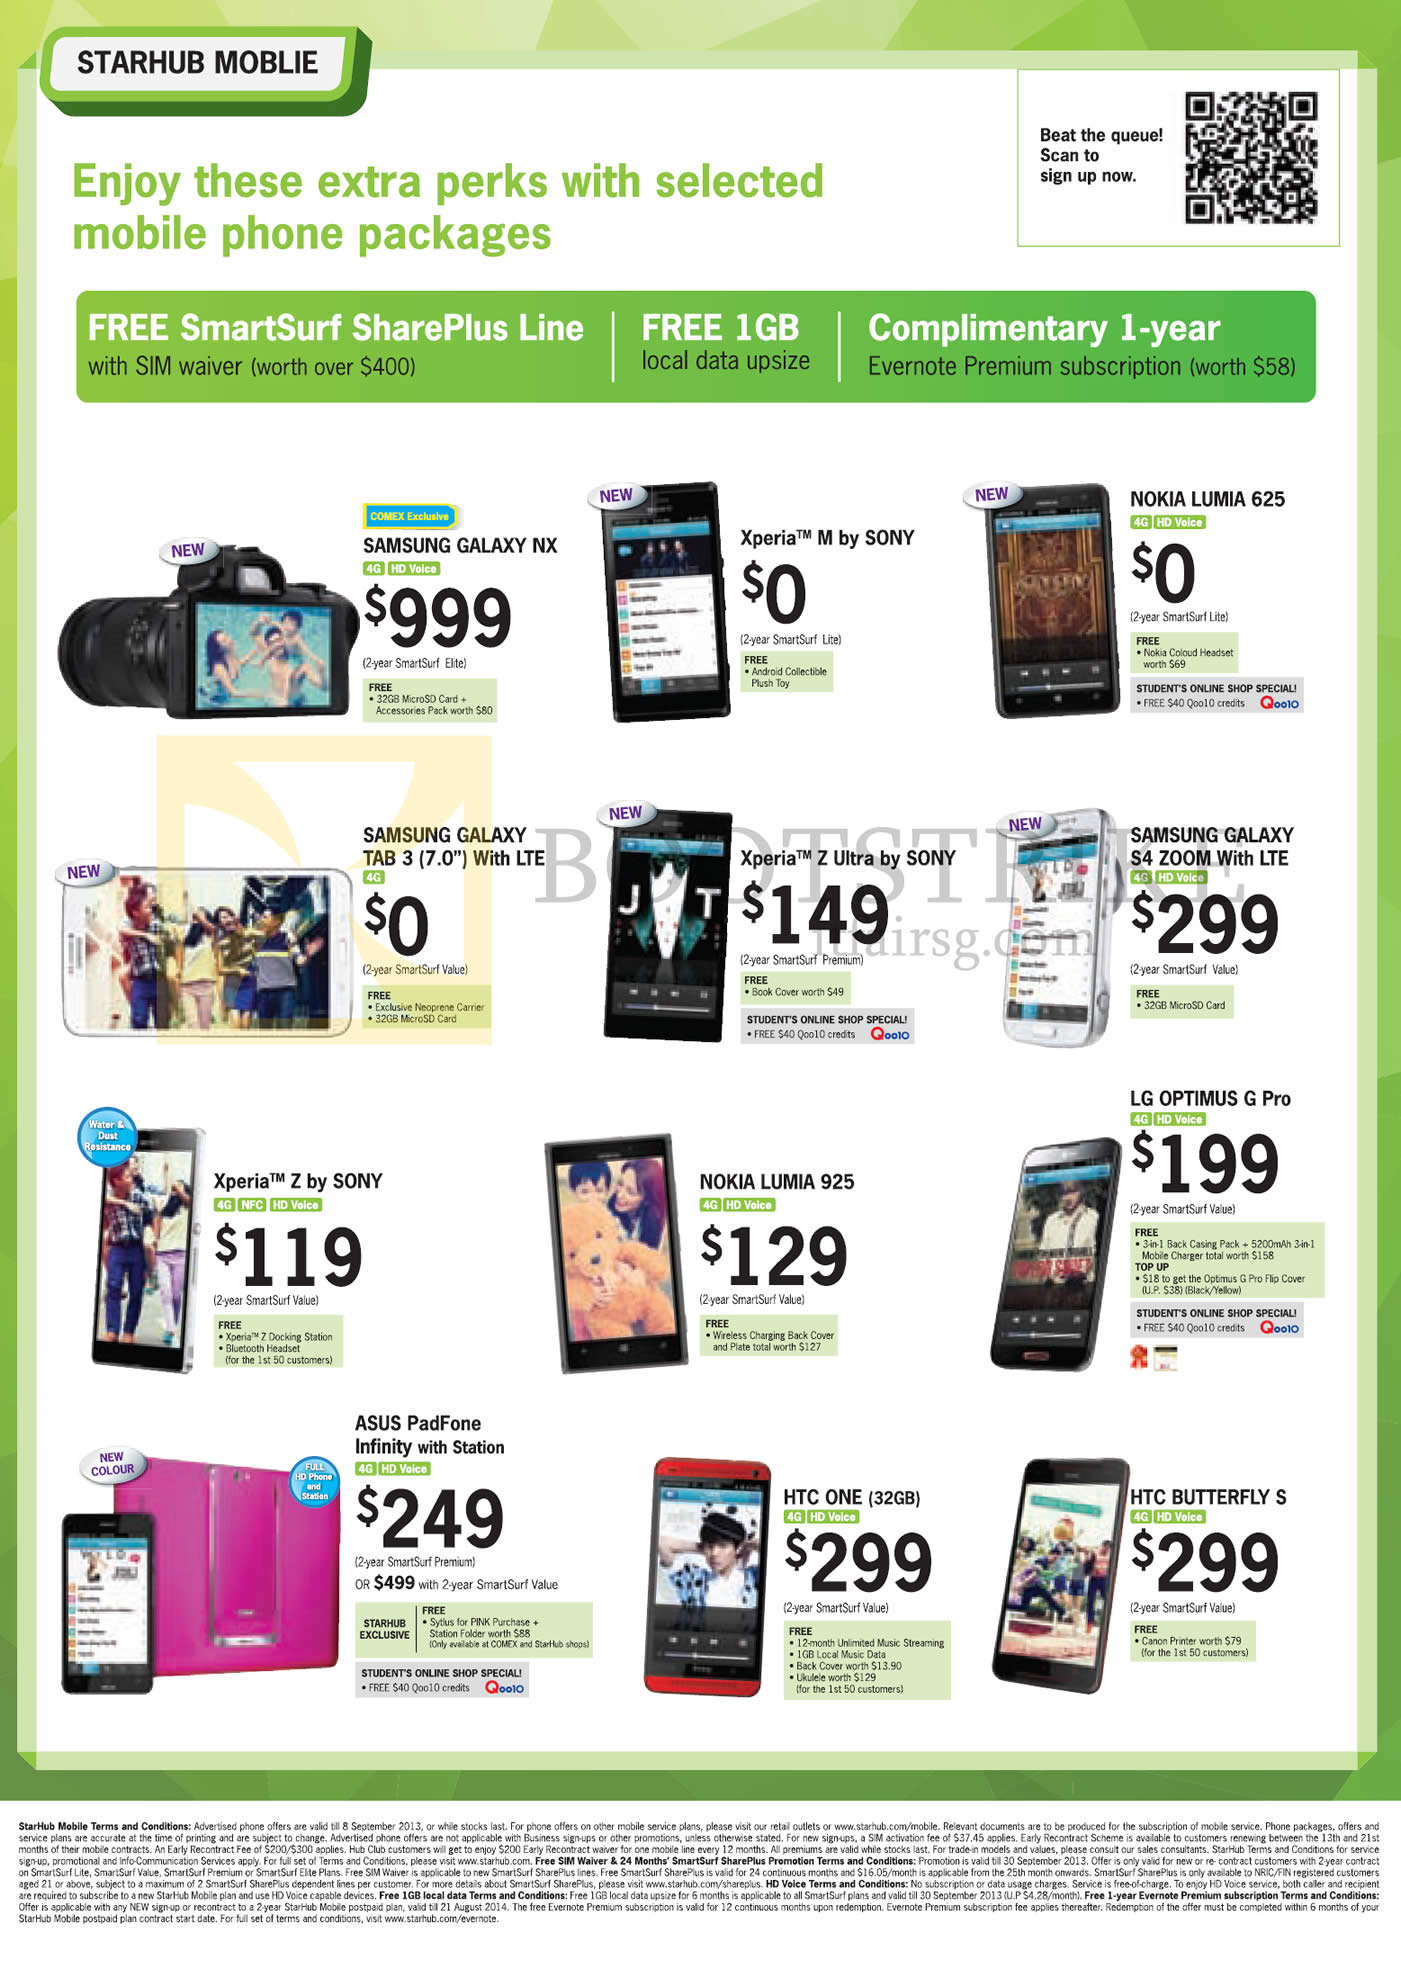 COMEX 2013 price list image brochure of Starhub Mobile Samsung Galaxy NX, Tab 3 7.0, S4 Zoom, Sony Xperia M, Xperia Z, Nokia Lumia 625, 925, LG Optimus G Pro, ASUS PadFone Infinity, HTC One, Buttefly S